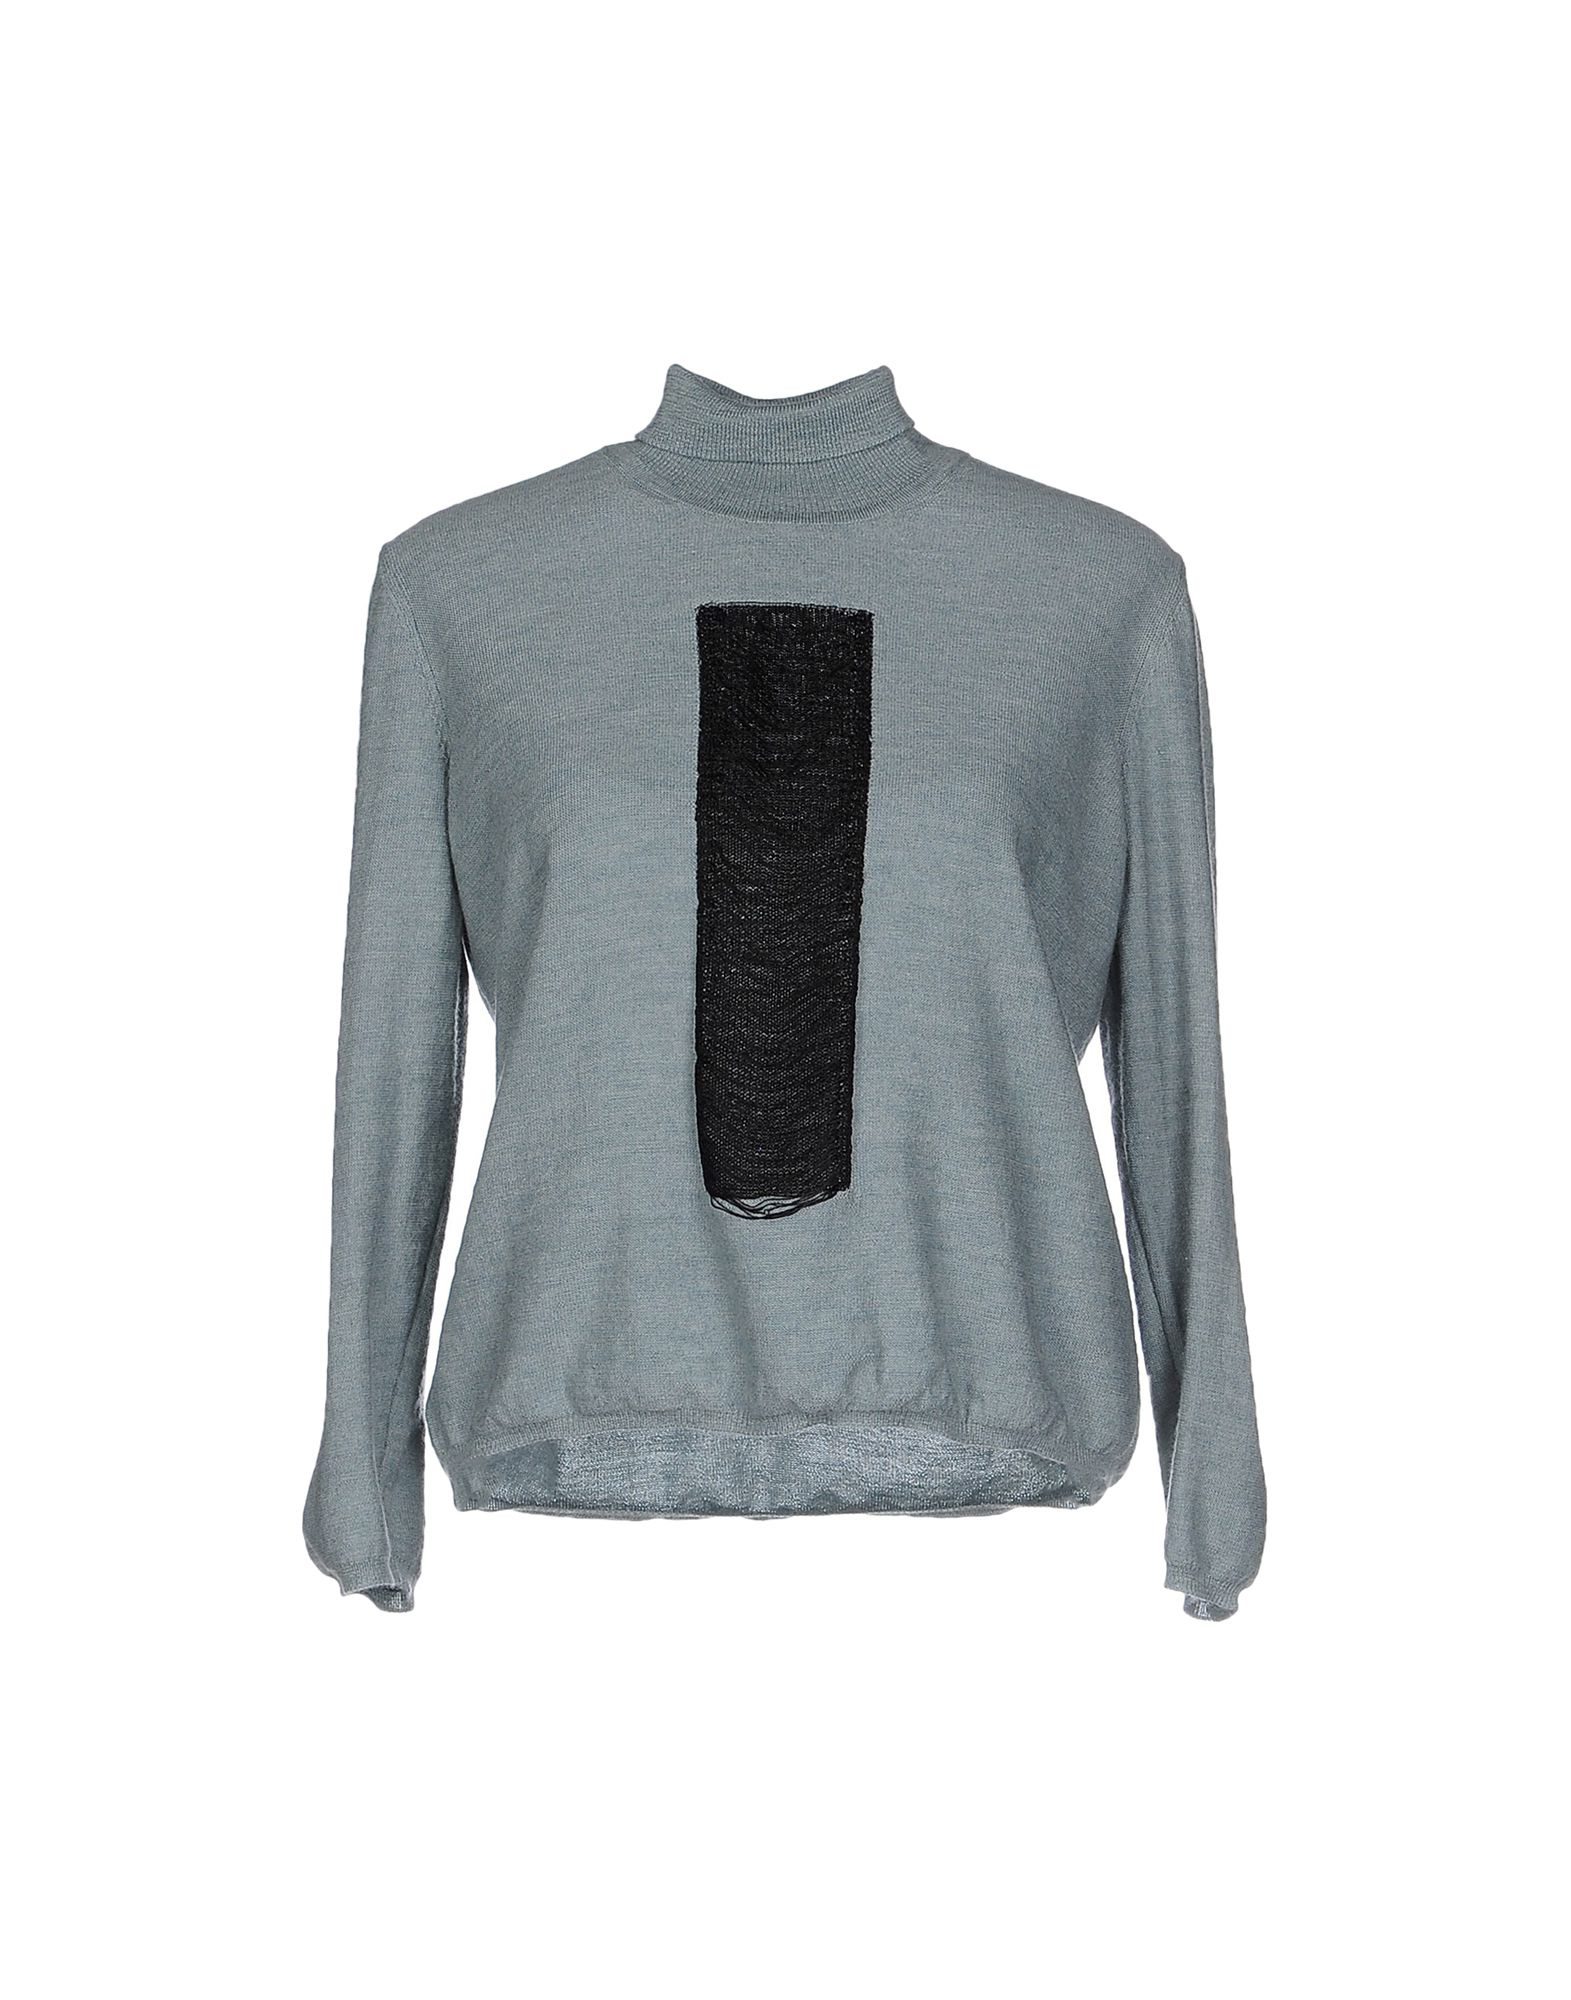 Lyst mm6 by maison martin margiela turtleneck in gray for Mm6 maison margiela